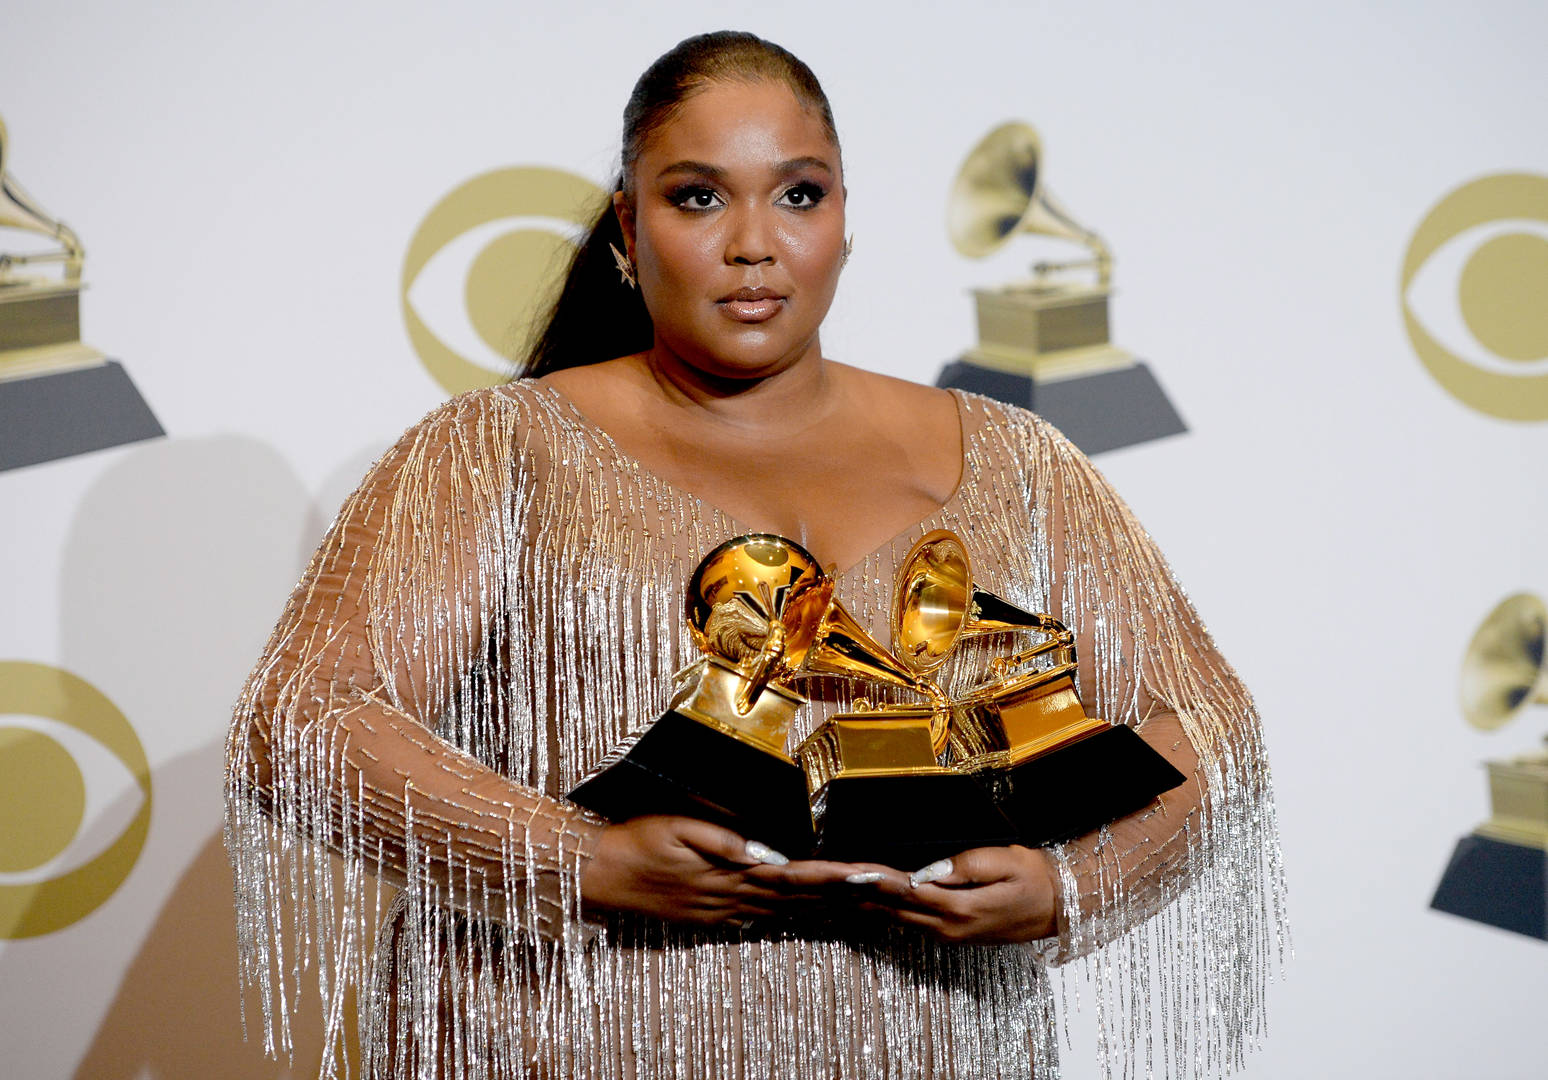 Lizzo postmates driver defamation lawsuit free speech